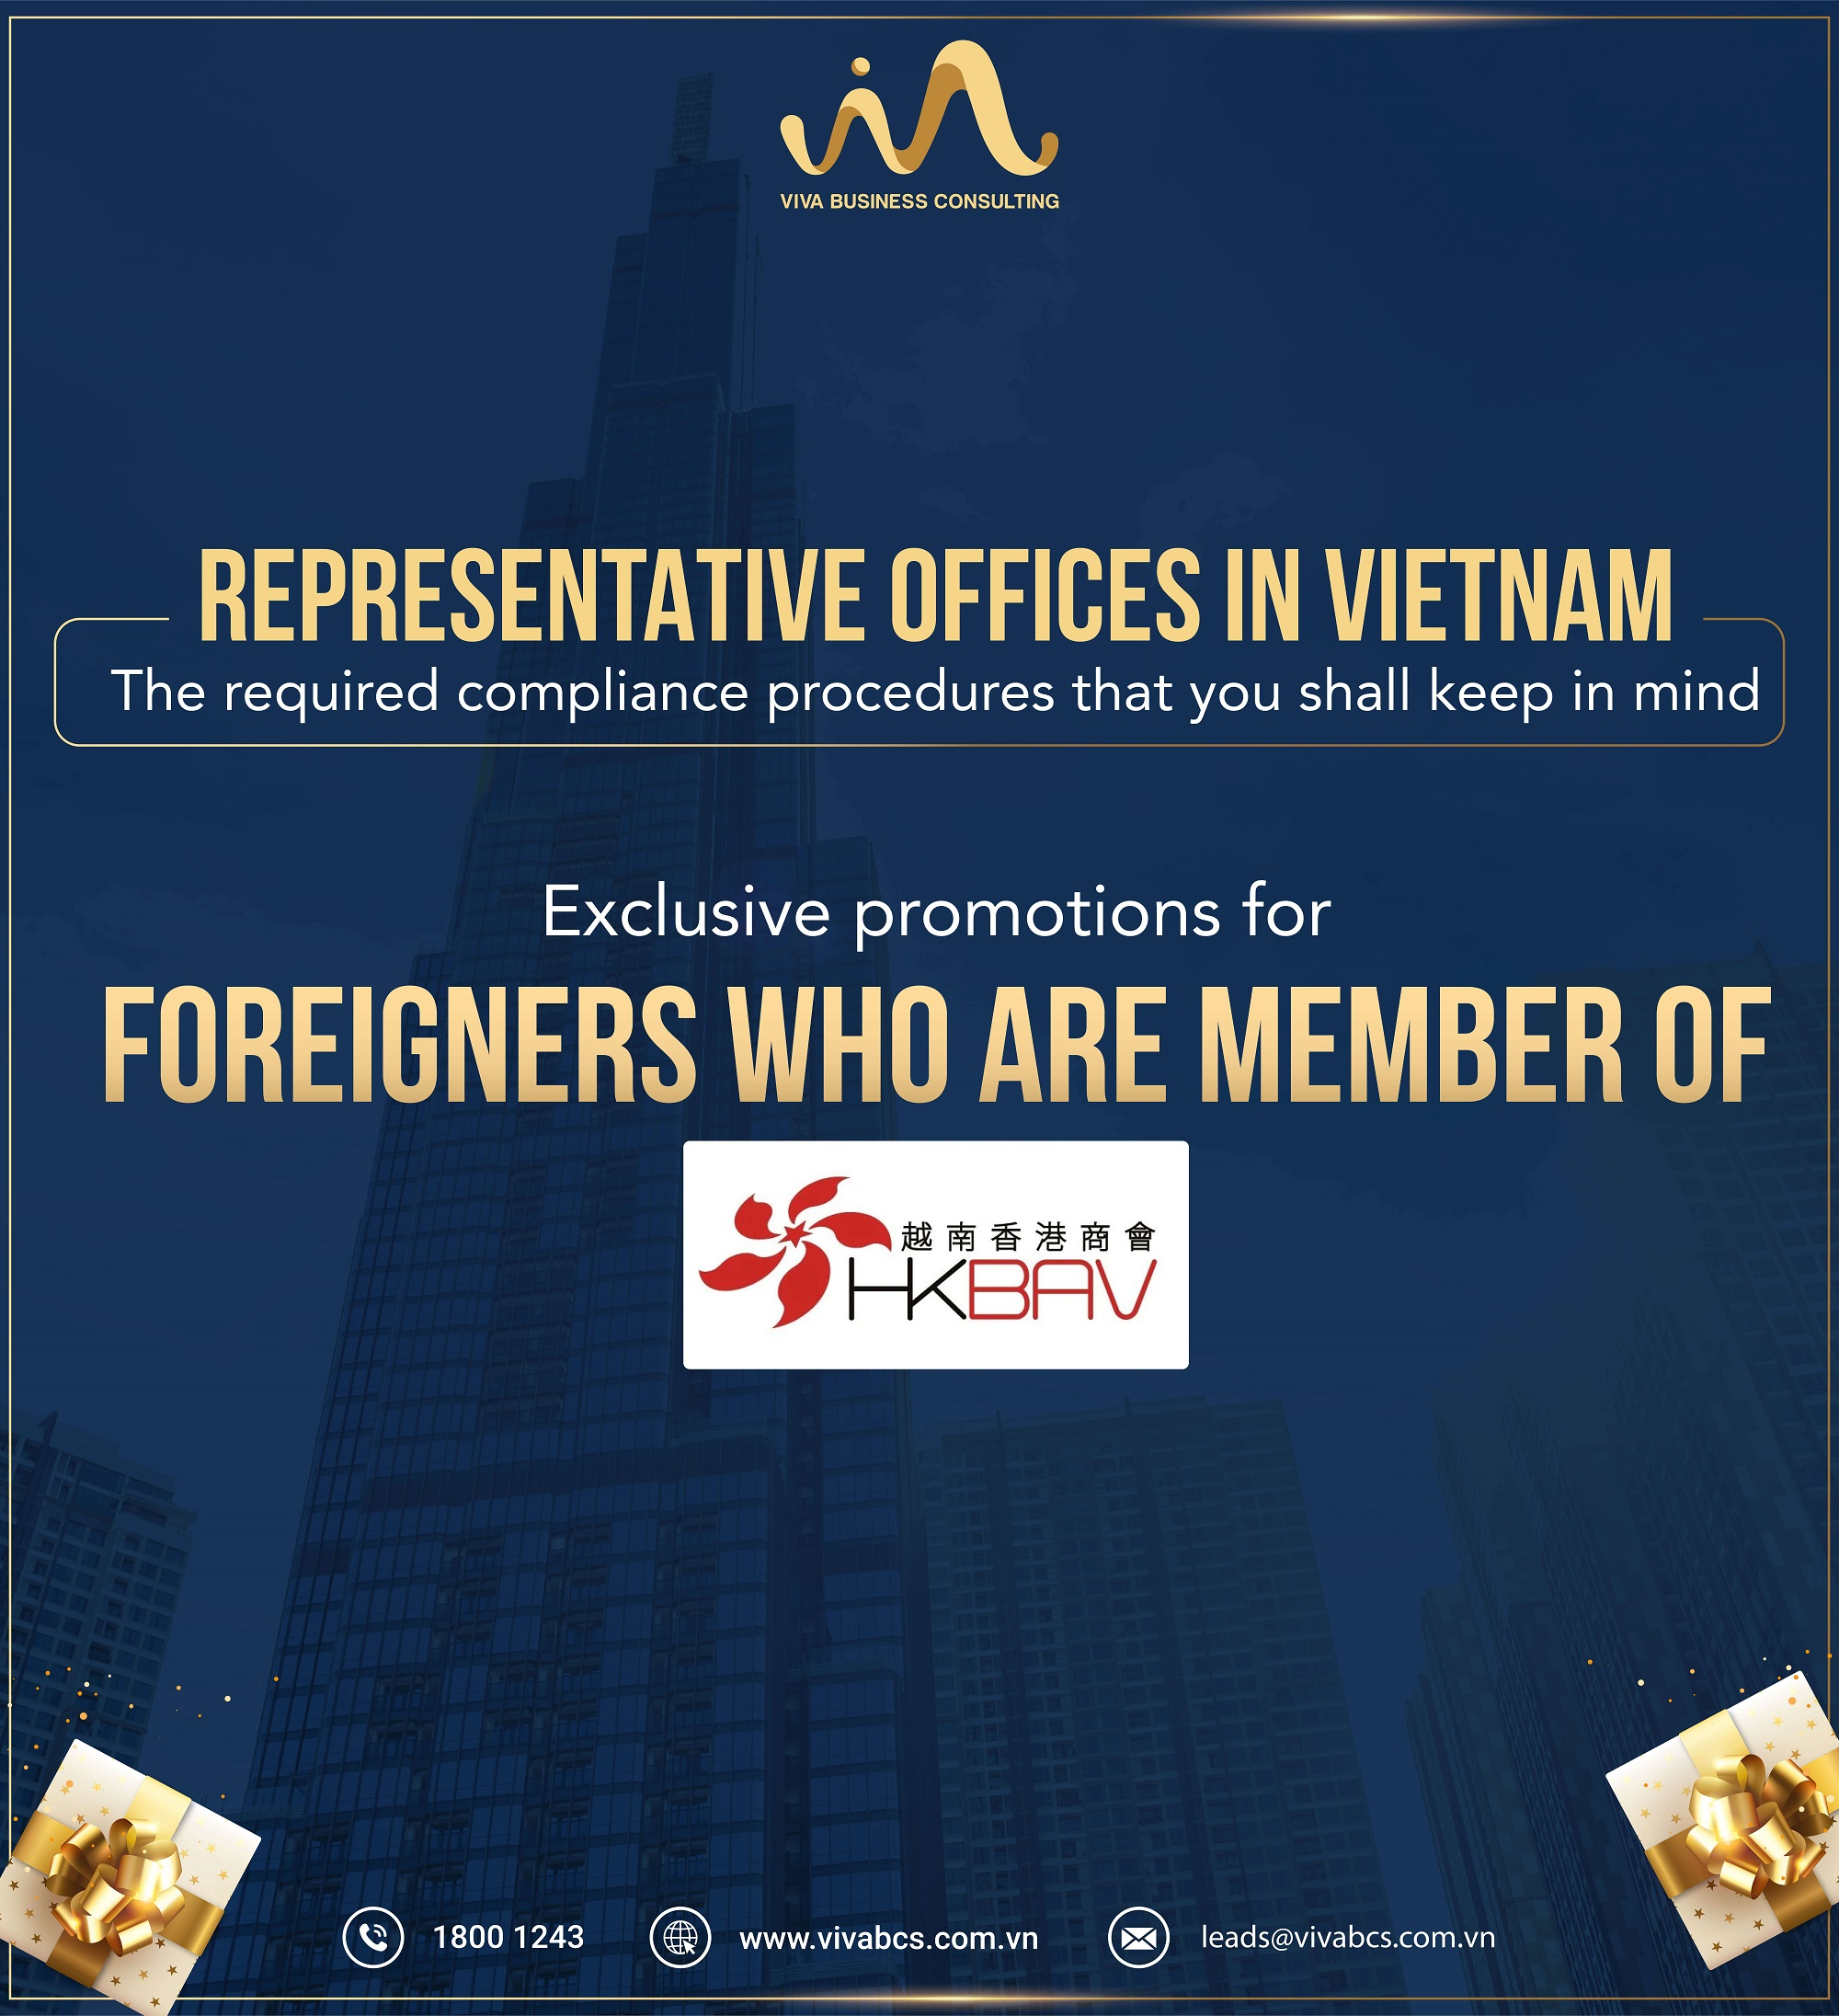 EXCLUSIVE PROMOTIONS FOR HONG KONG CHAMBER 1 - Trang Chủ